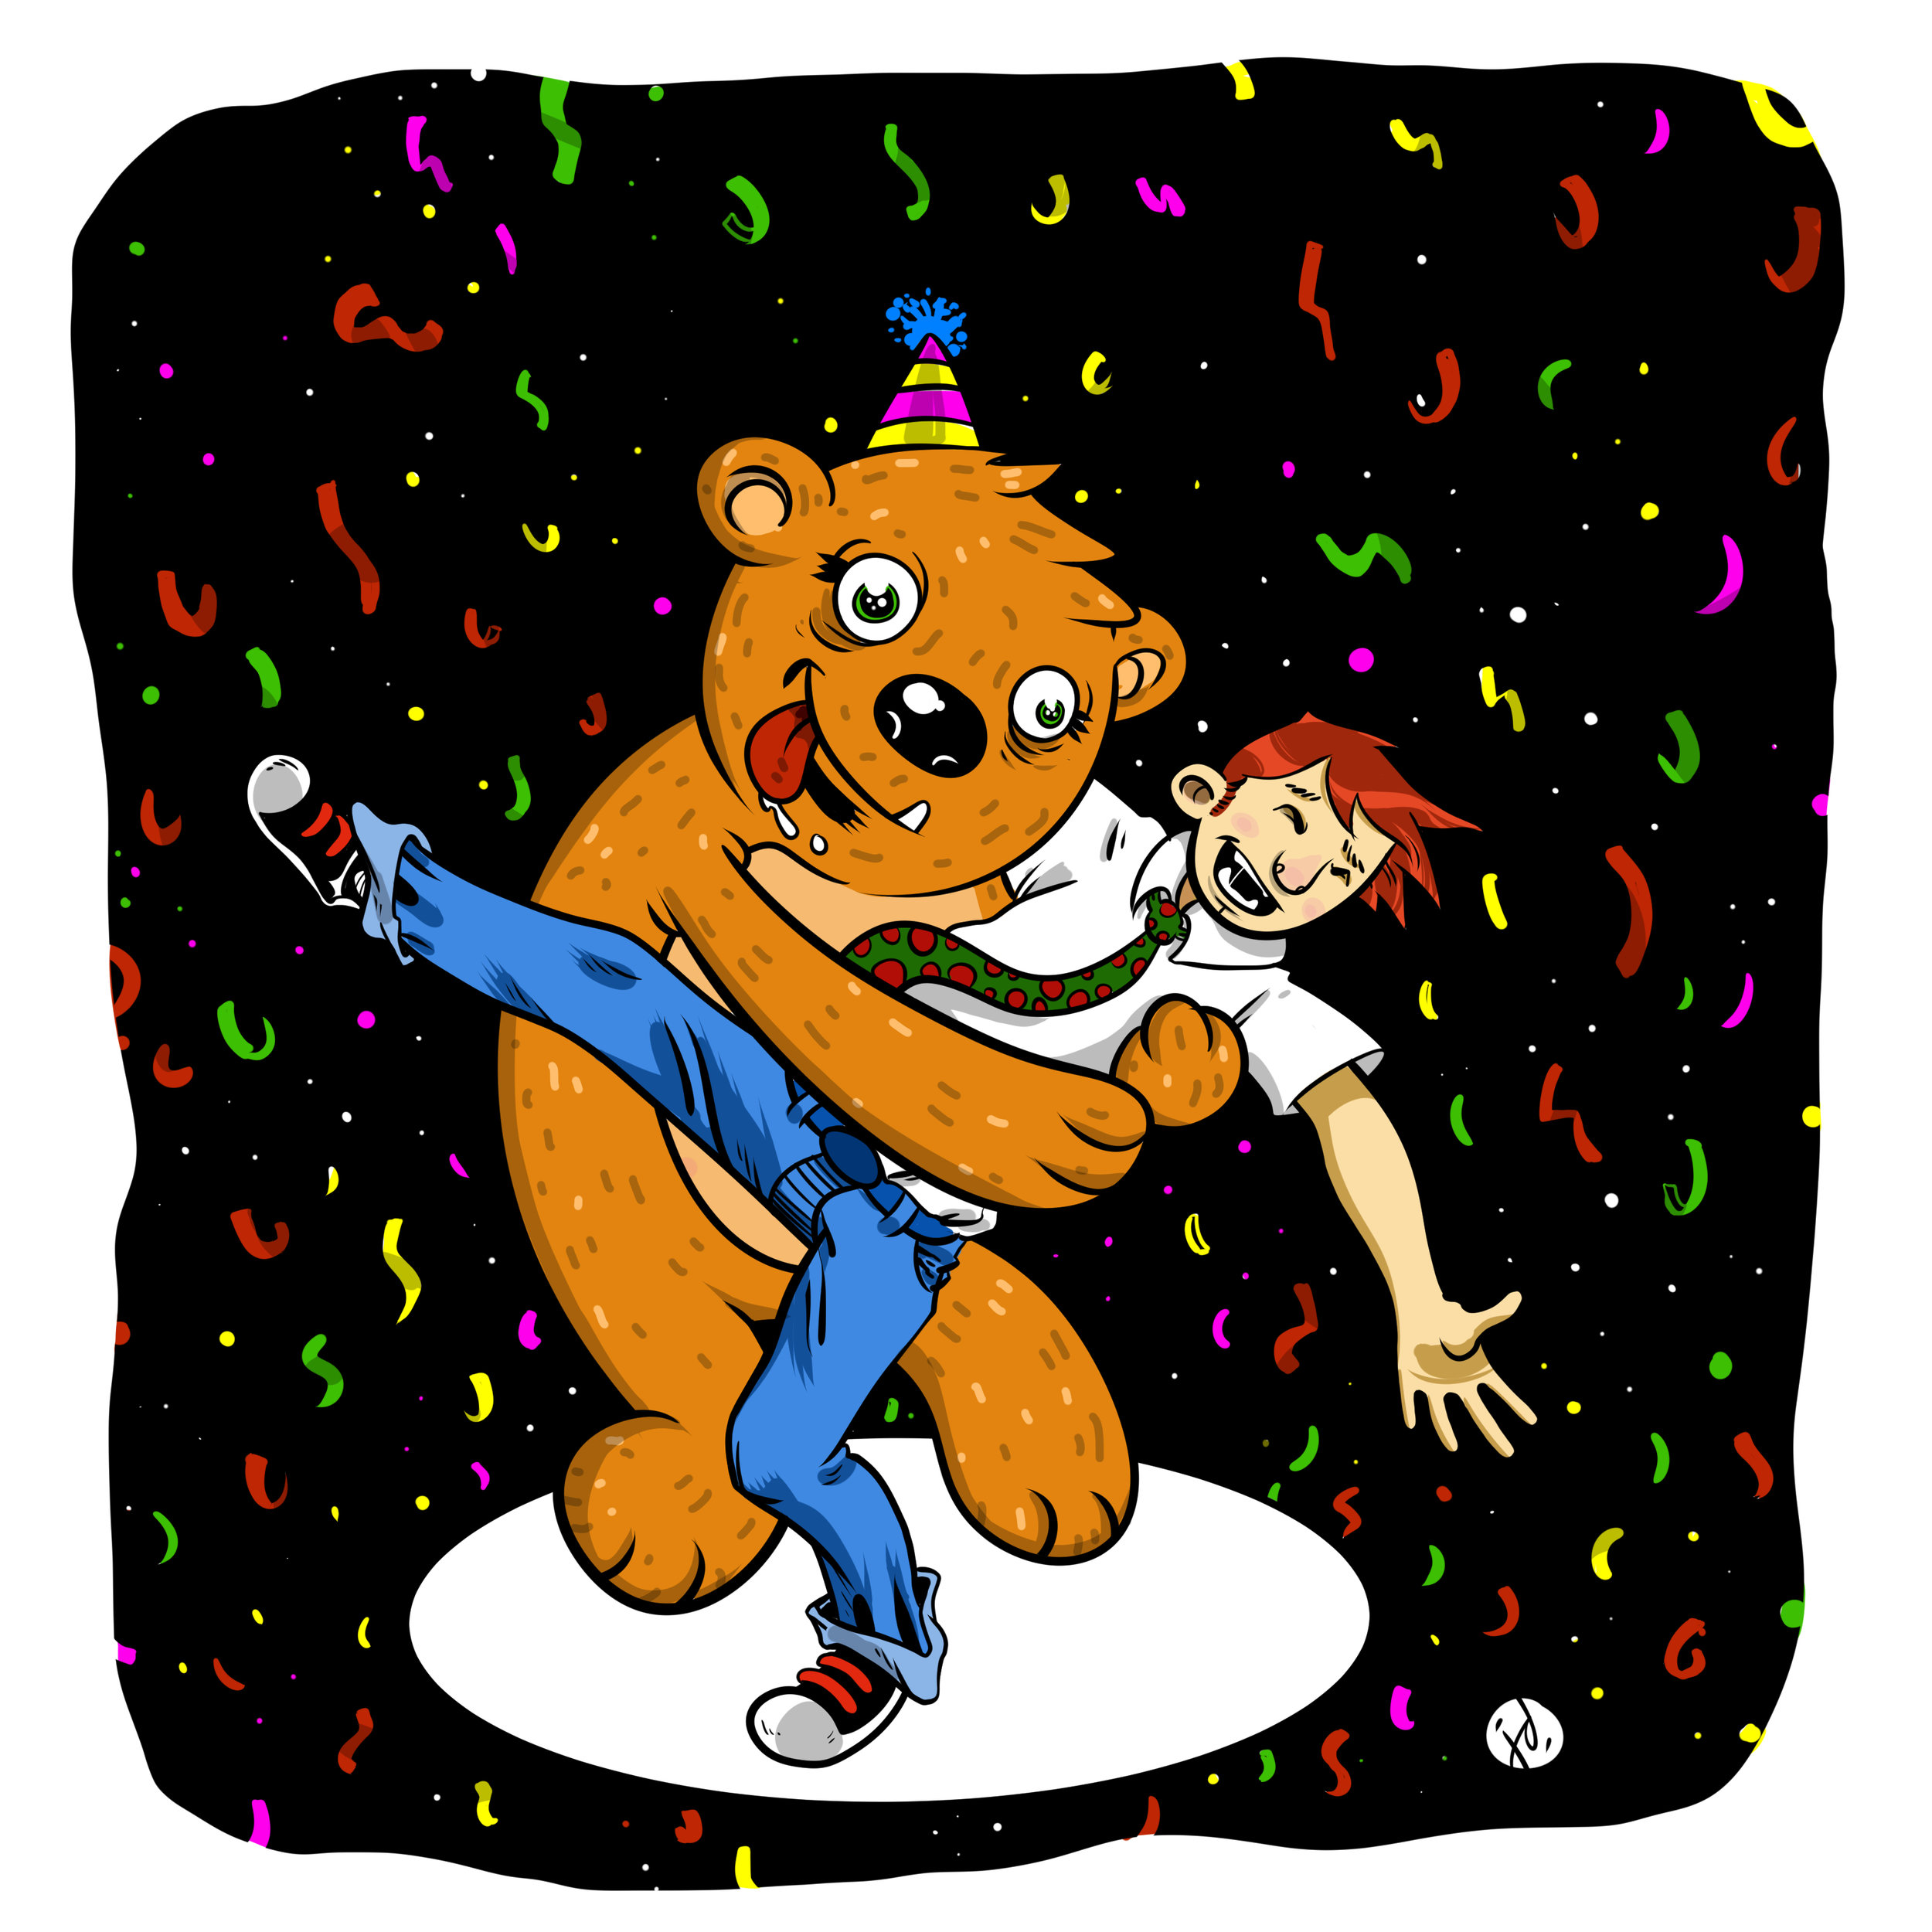 11-16_party_with_your_bear.jpg